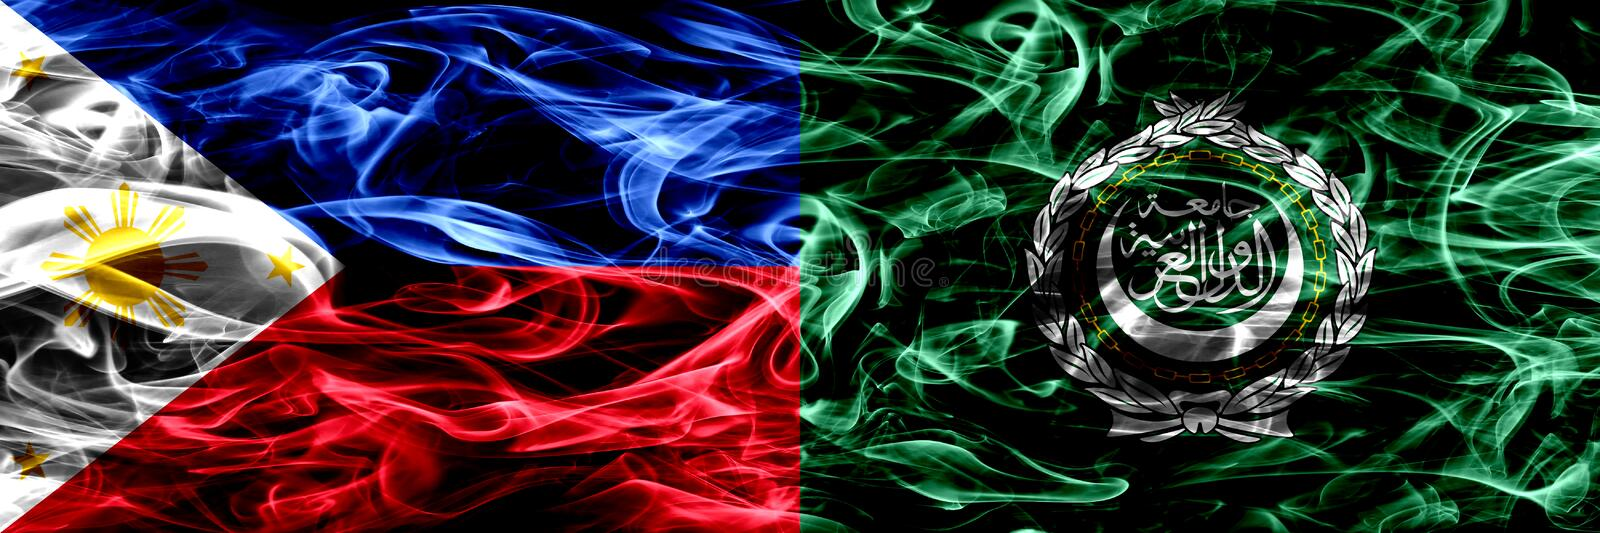 Philippines vs Arab League smoke flags placed side by side. Thick abstract colored silky smoke flags. royalty free stock photography